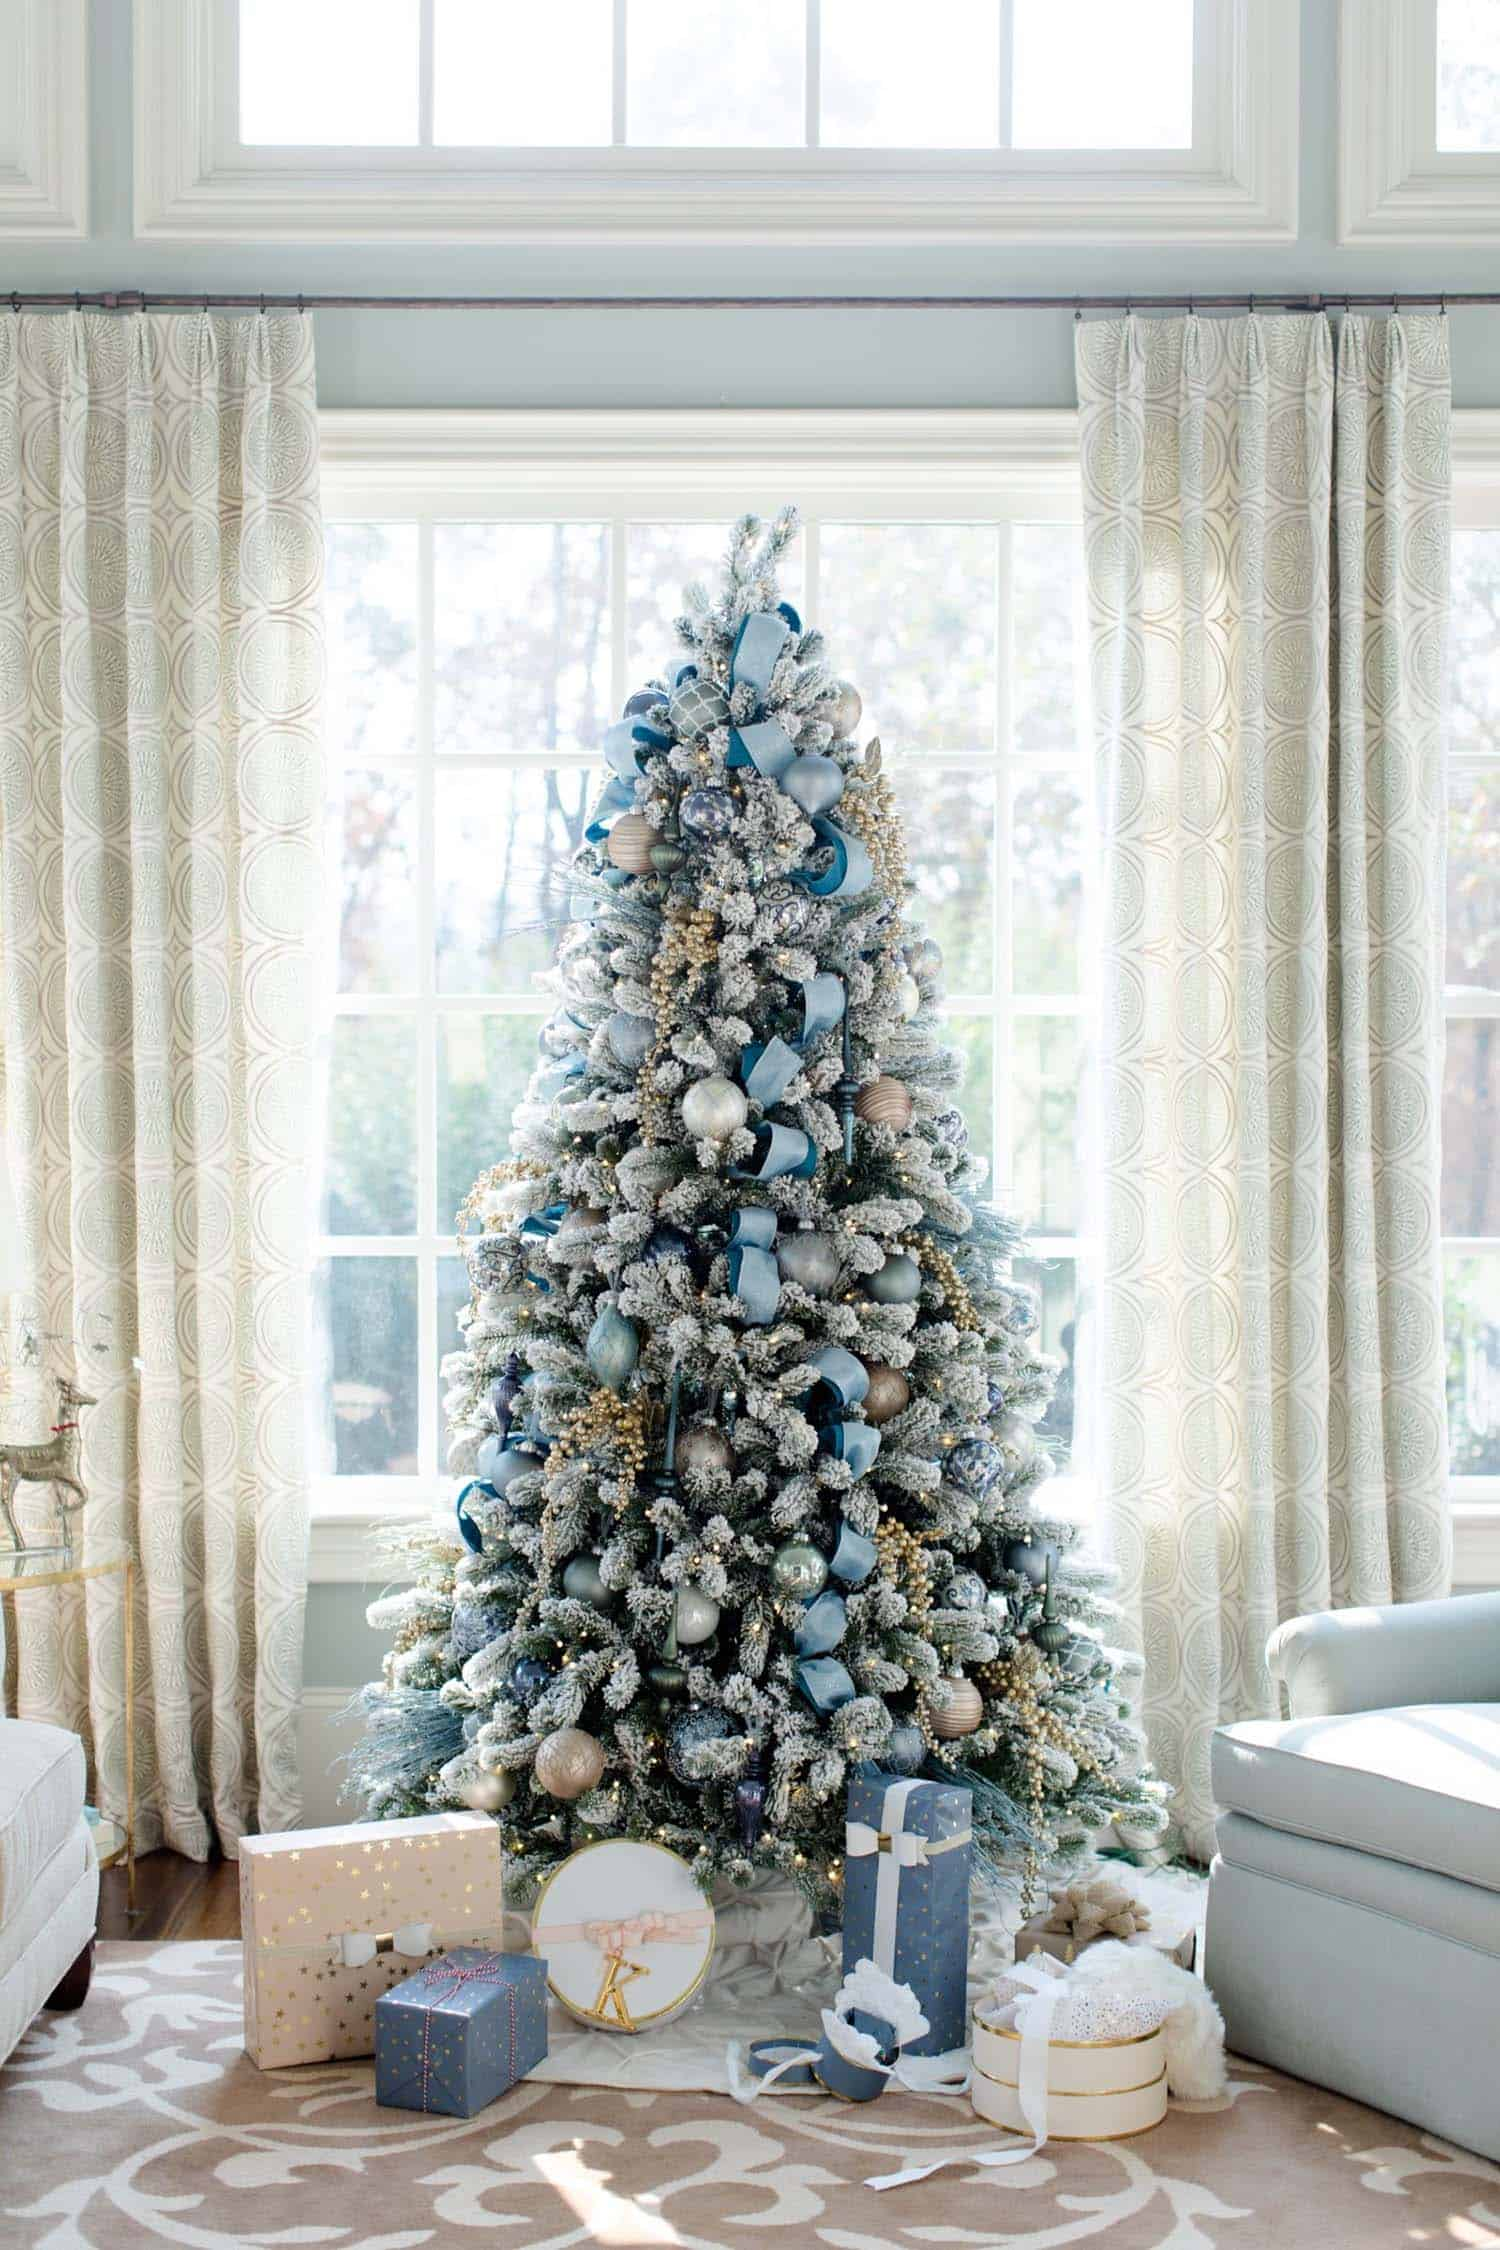 Amazing Christmas Decorating Trees-26-1 Kindesign